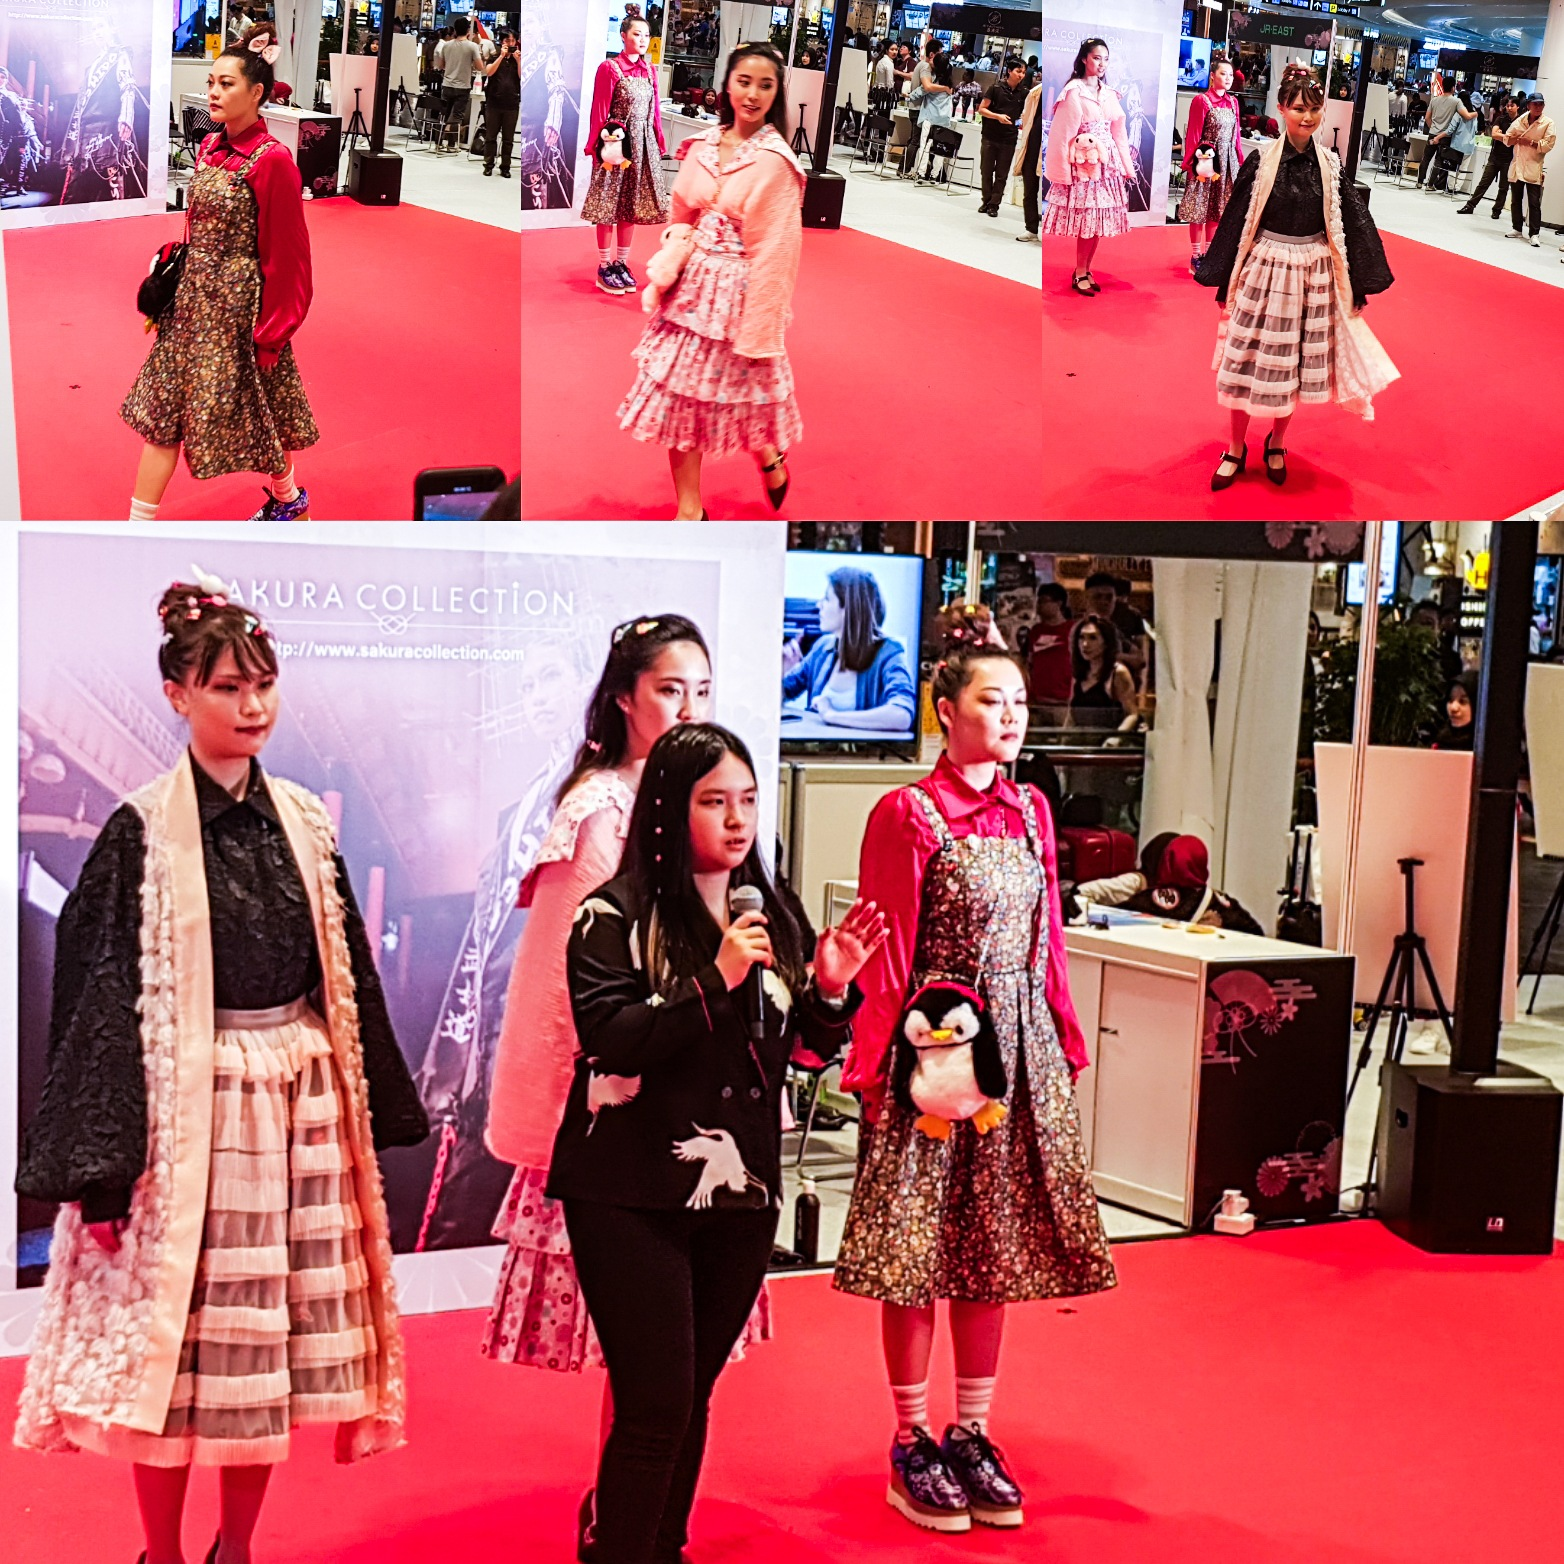 Sakura Collection Asia Student Awards 2020 Award ceremony Jewel Changi Airport International Raffles Fashion Designer Collection